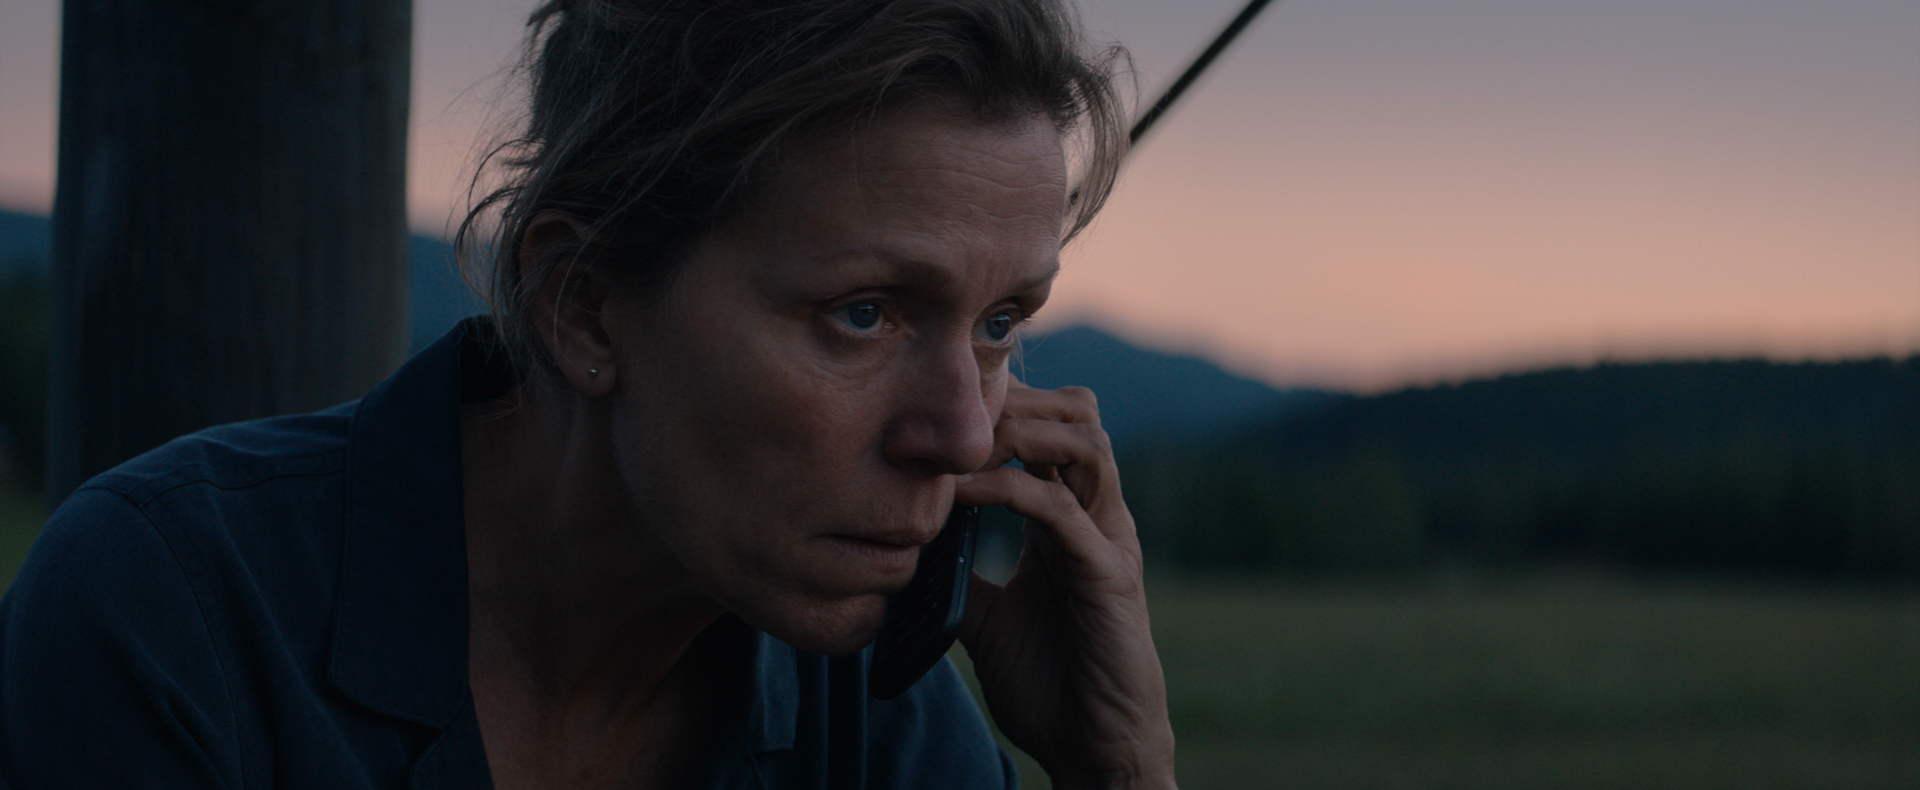 THREE_BILLBOARDS_OUTSIDE_EBBING_MISSOURI_phone--1-